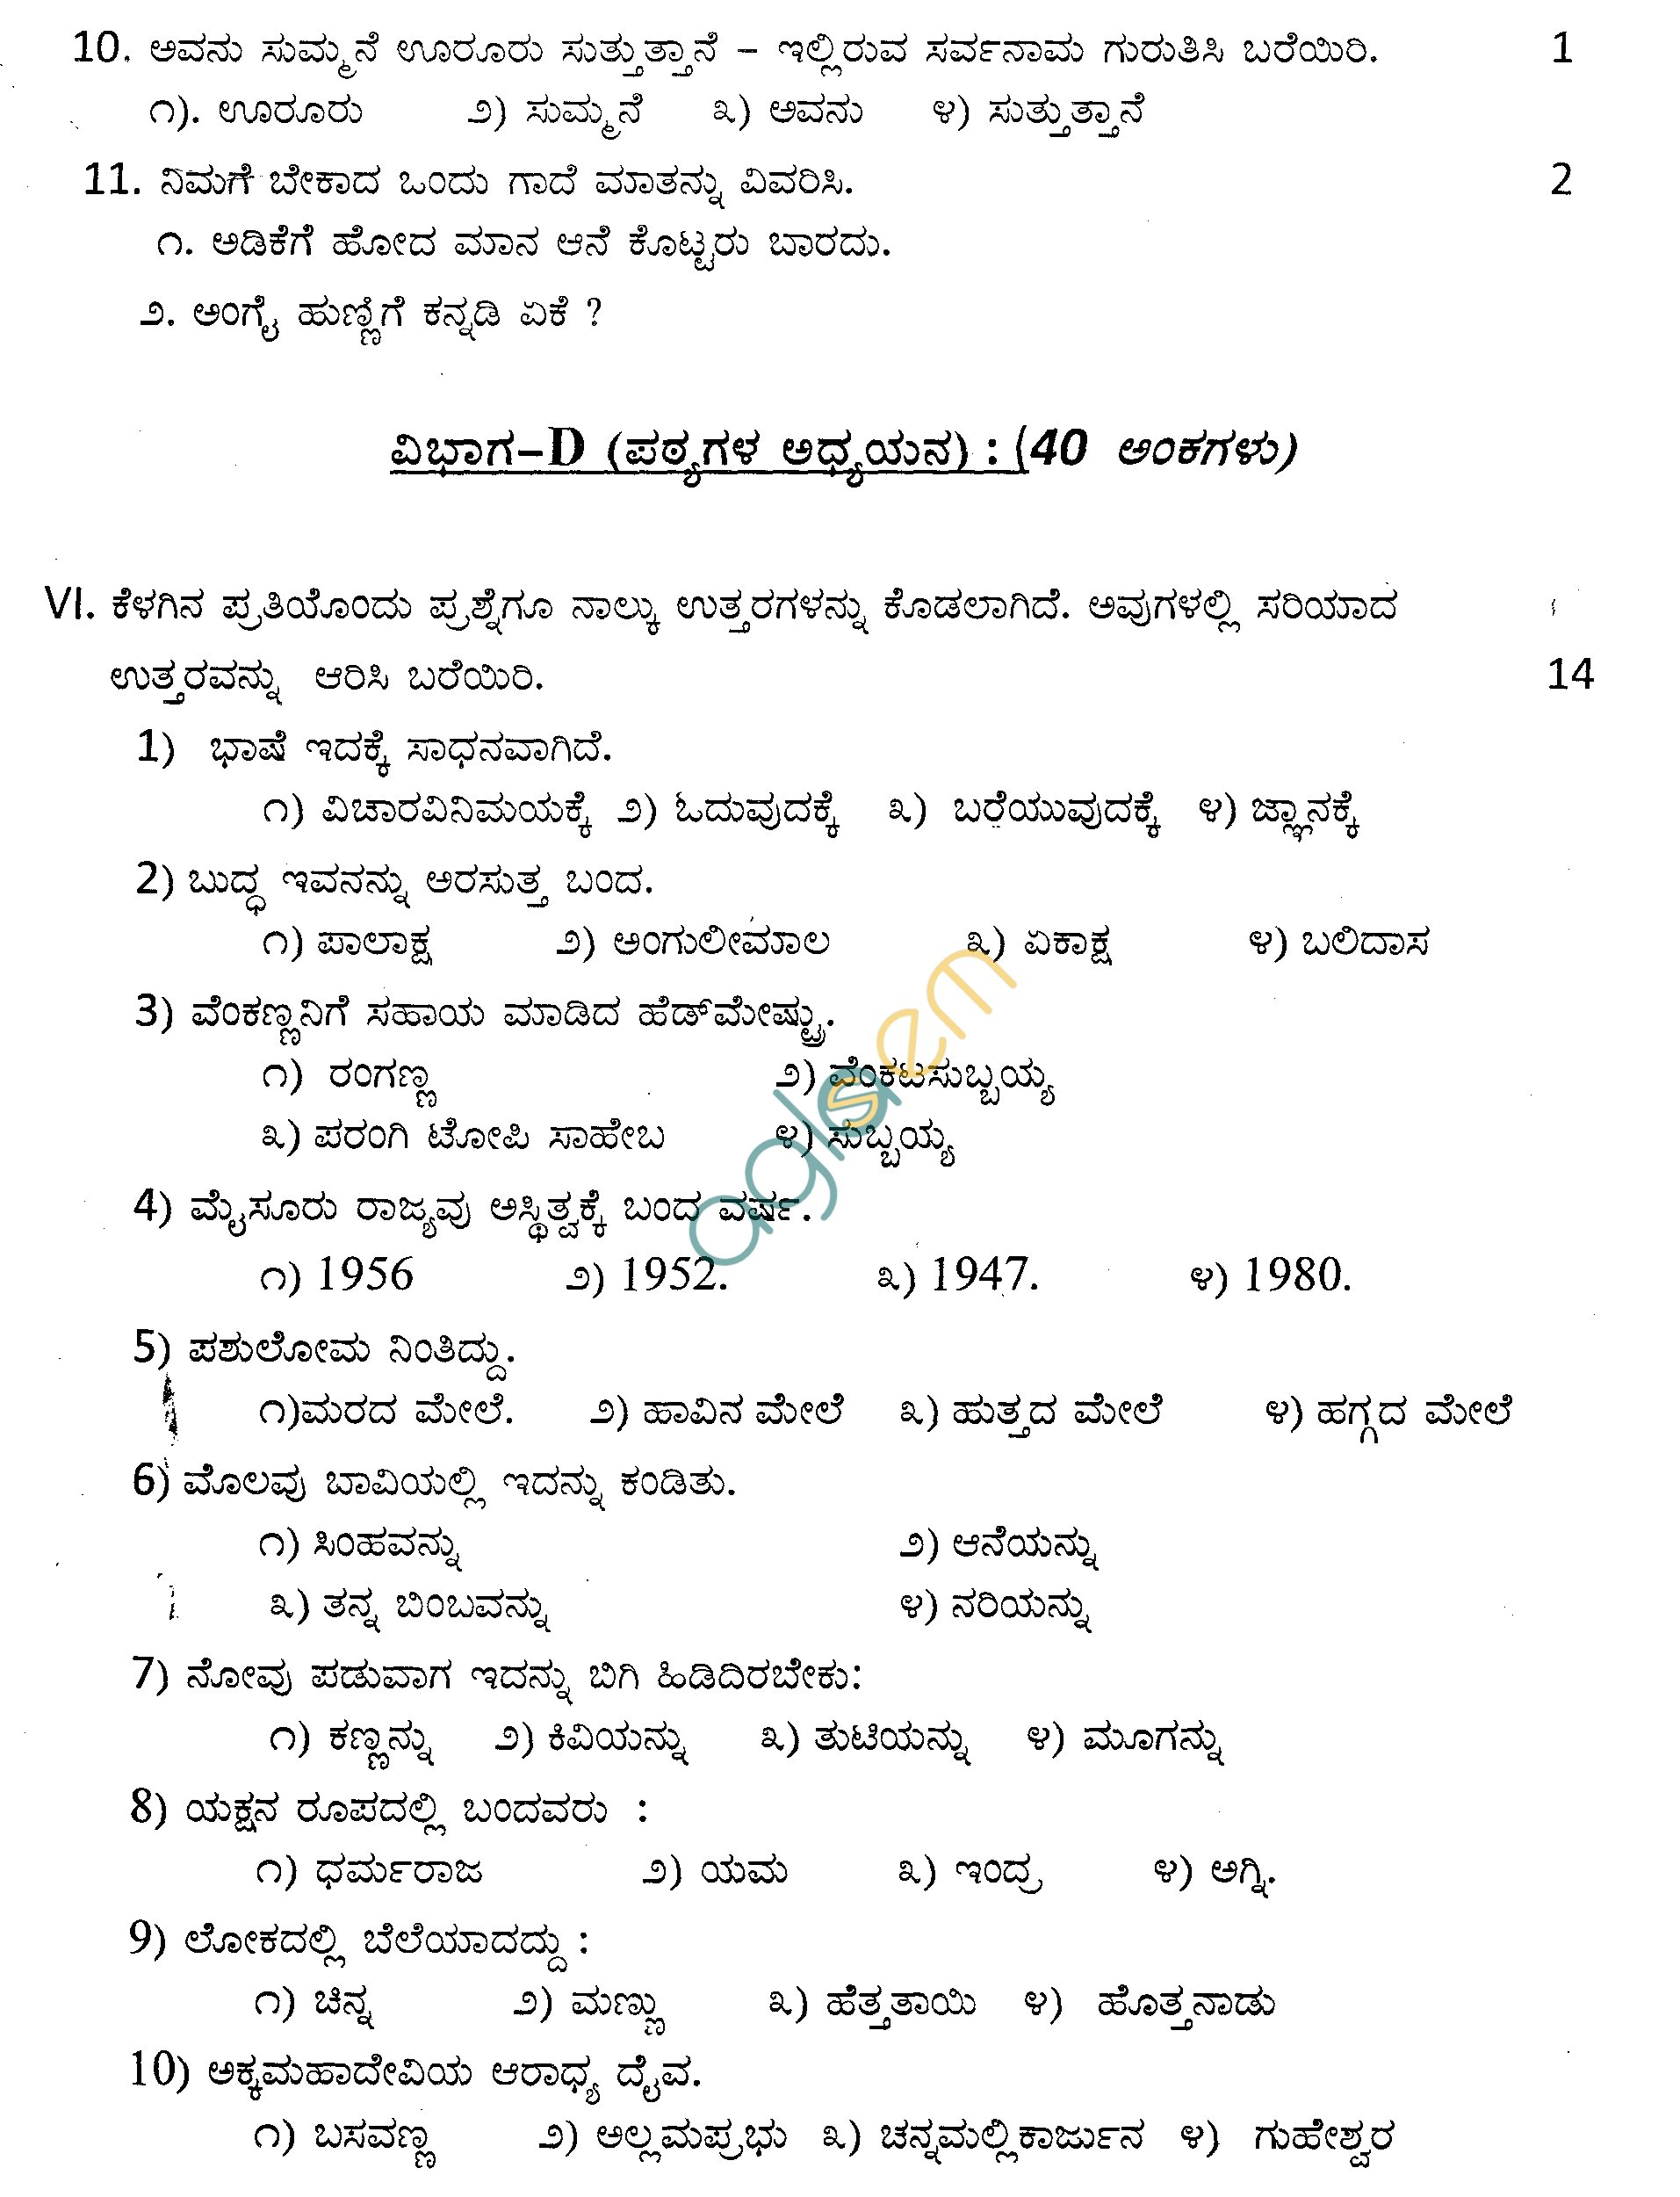 cbse sample question papers class 9 2nd term